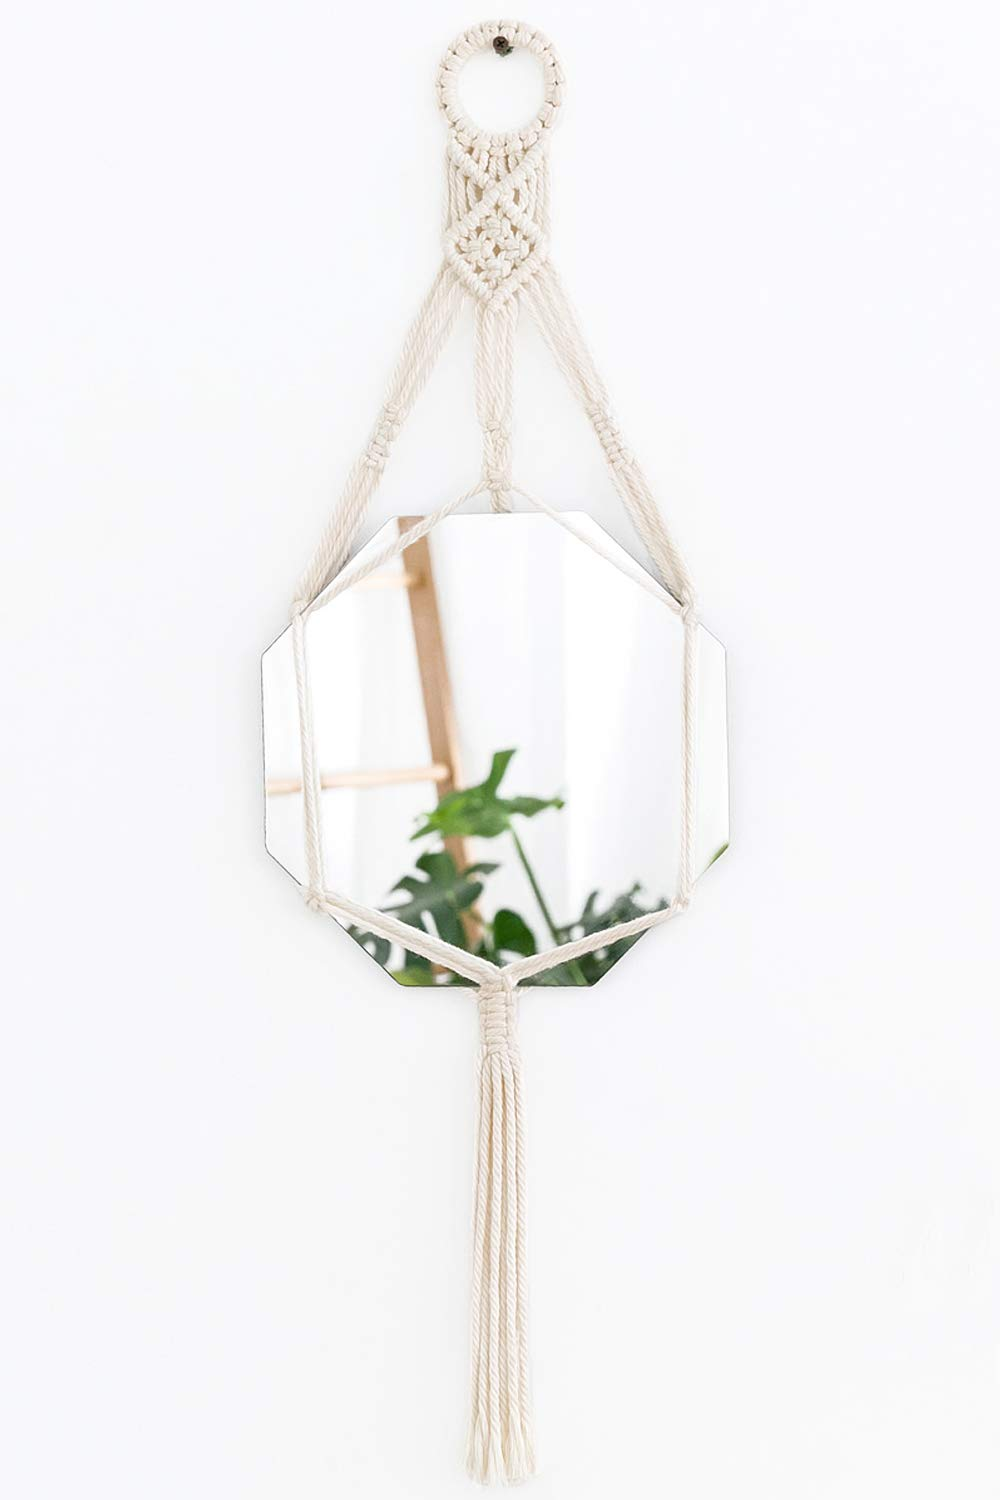 Mkouo Small Octagonal Hanging Mirror Macrame Chic Wall Decor